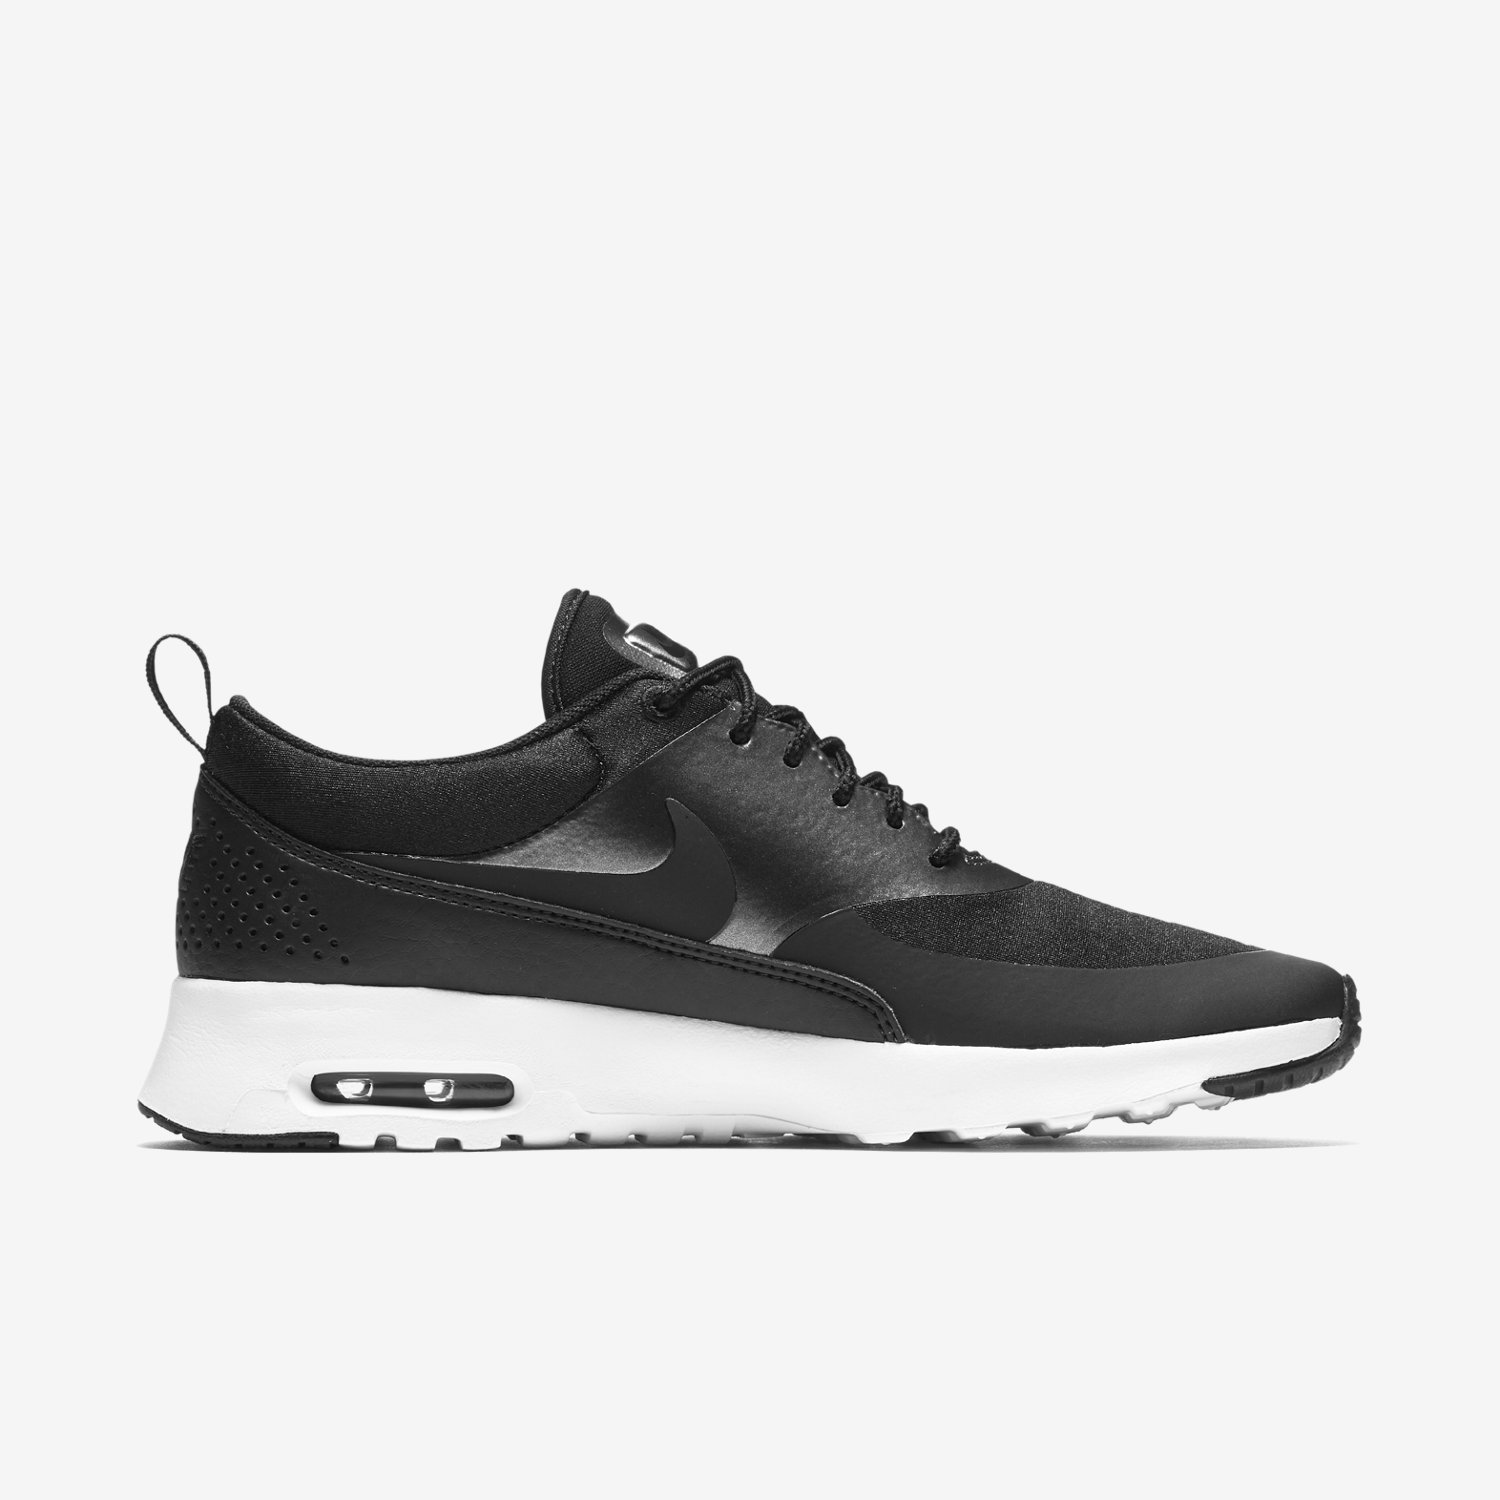 nike air max thea knit. Black Bedroom Furniture Sets. Home Design Ideas